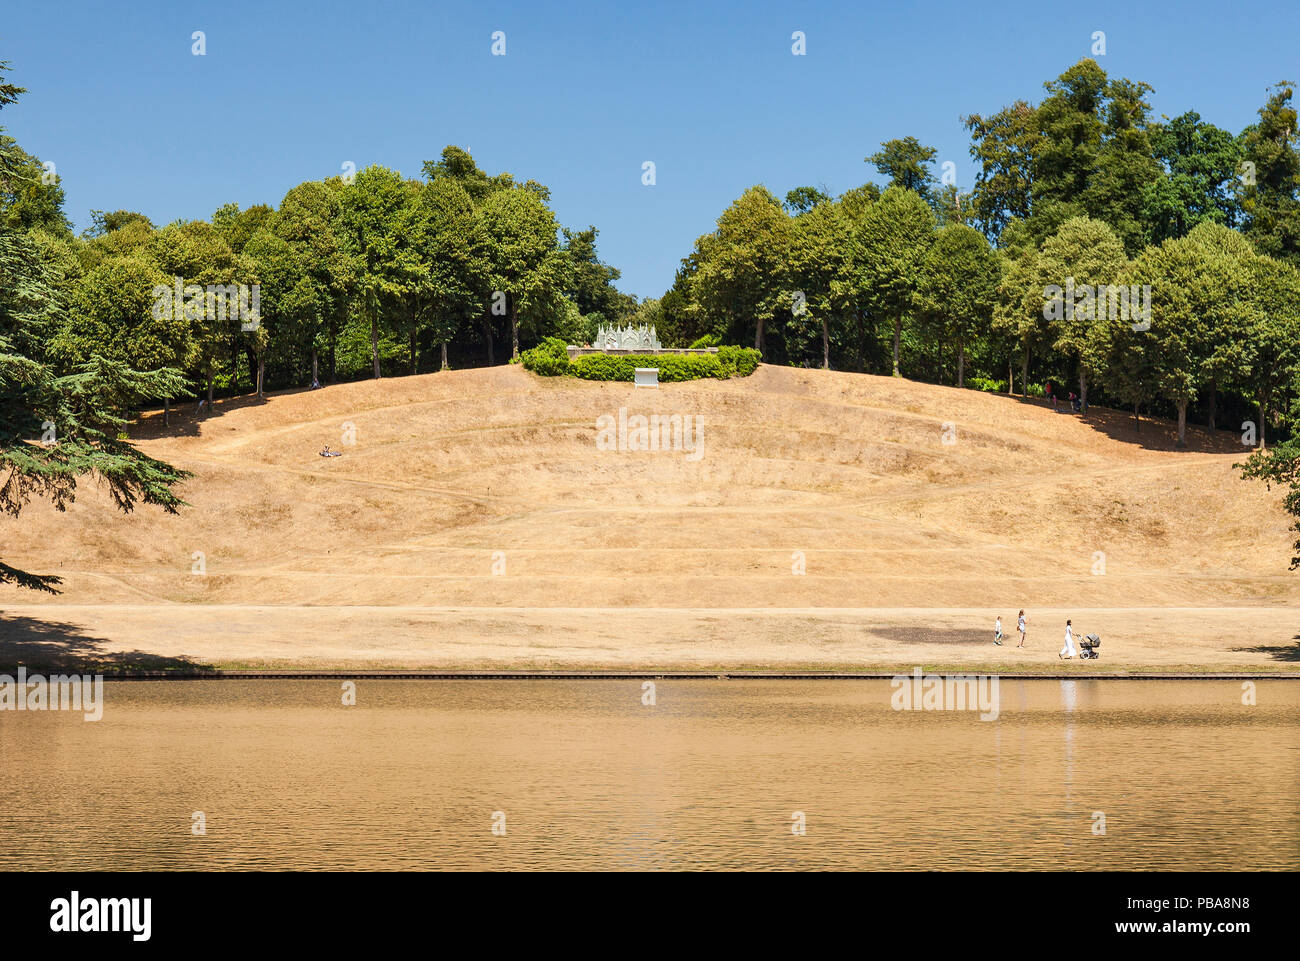 Claremont landscape garden amphitheater, parched grass during summer of 2018. - Stock Image